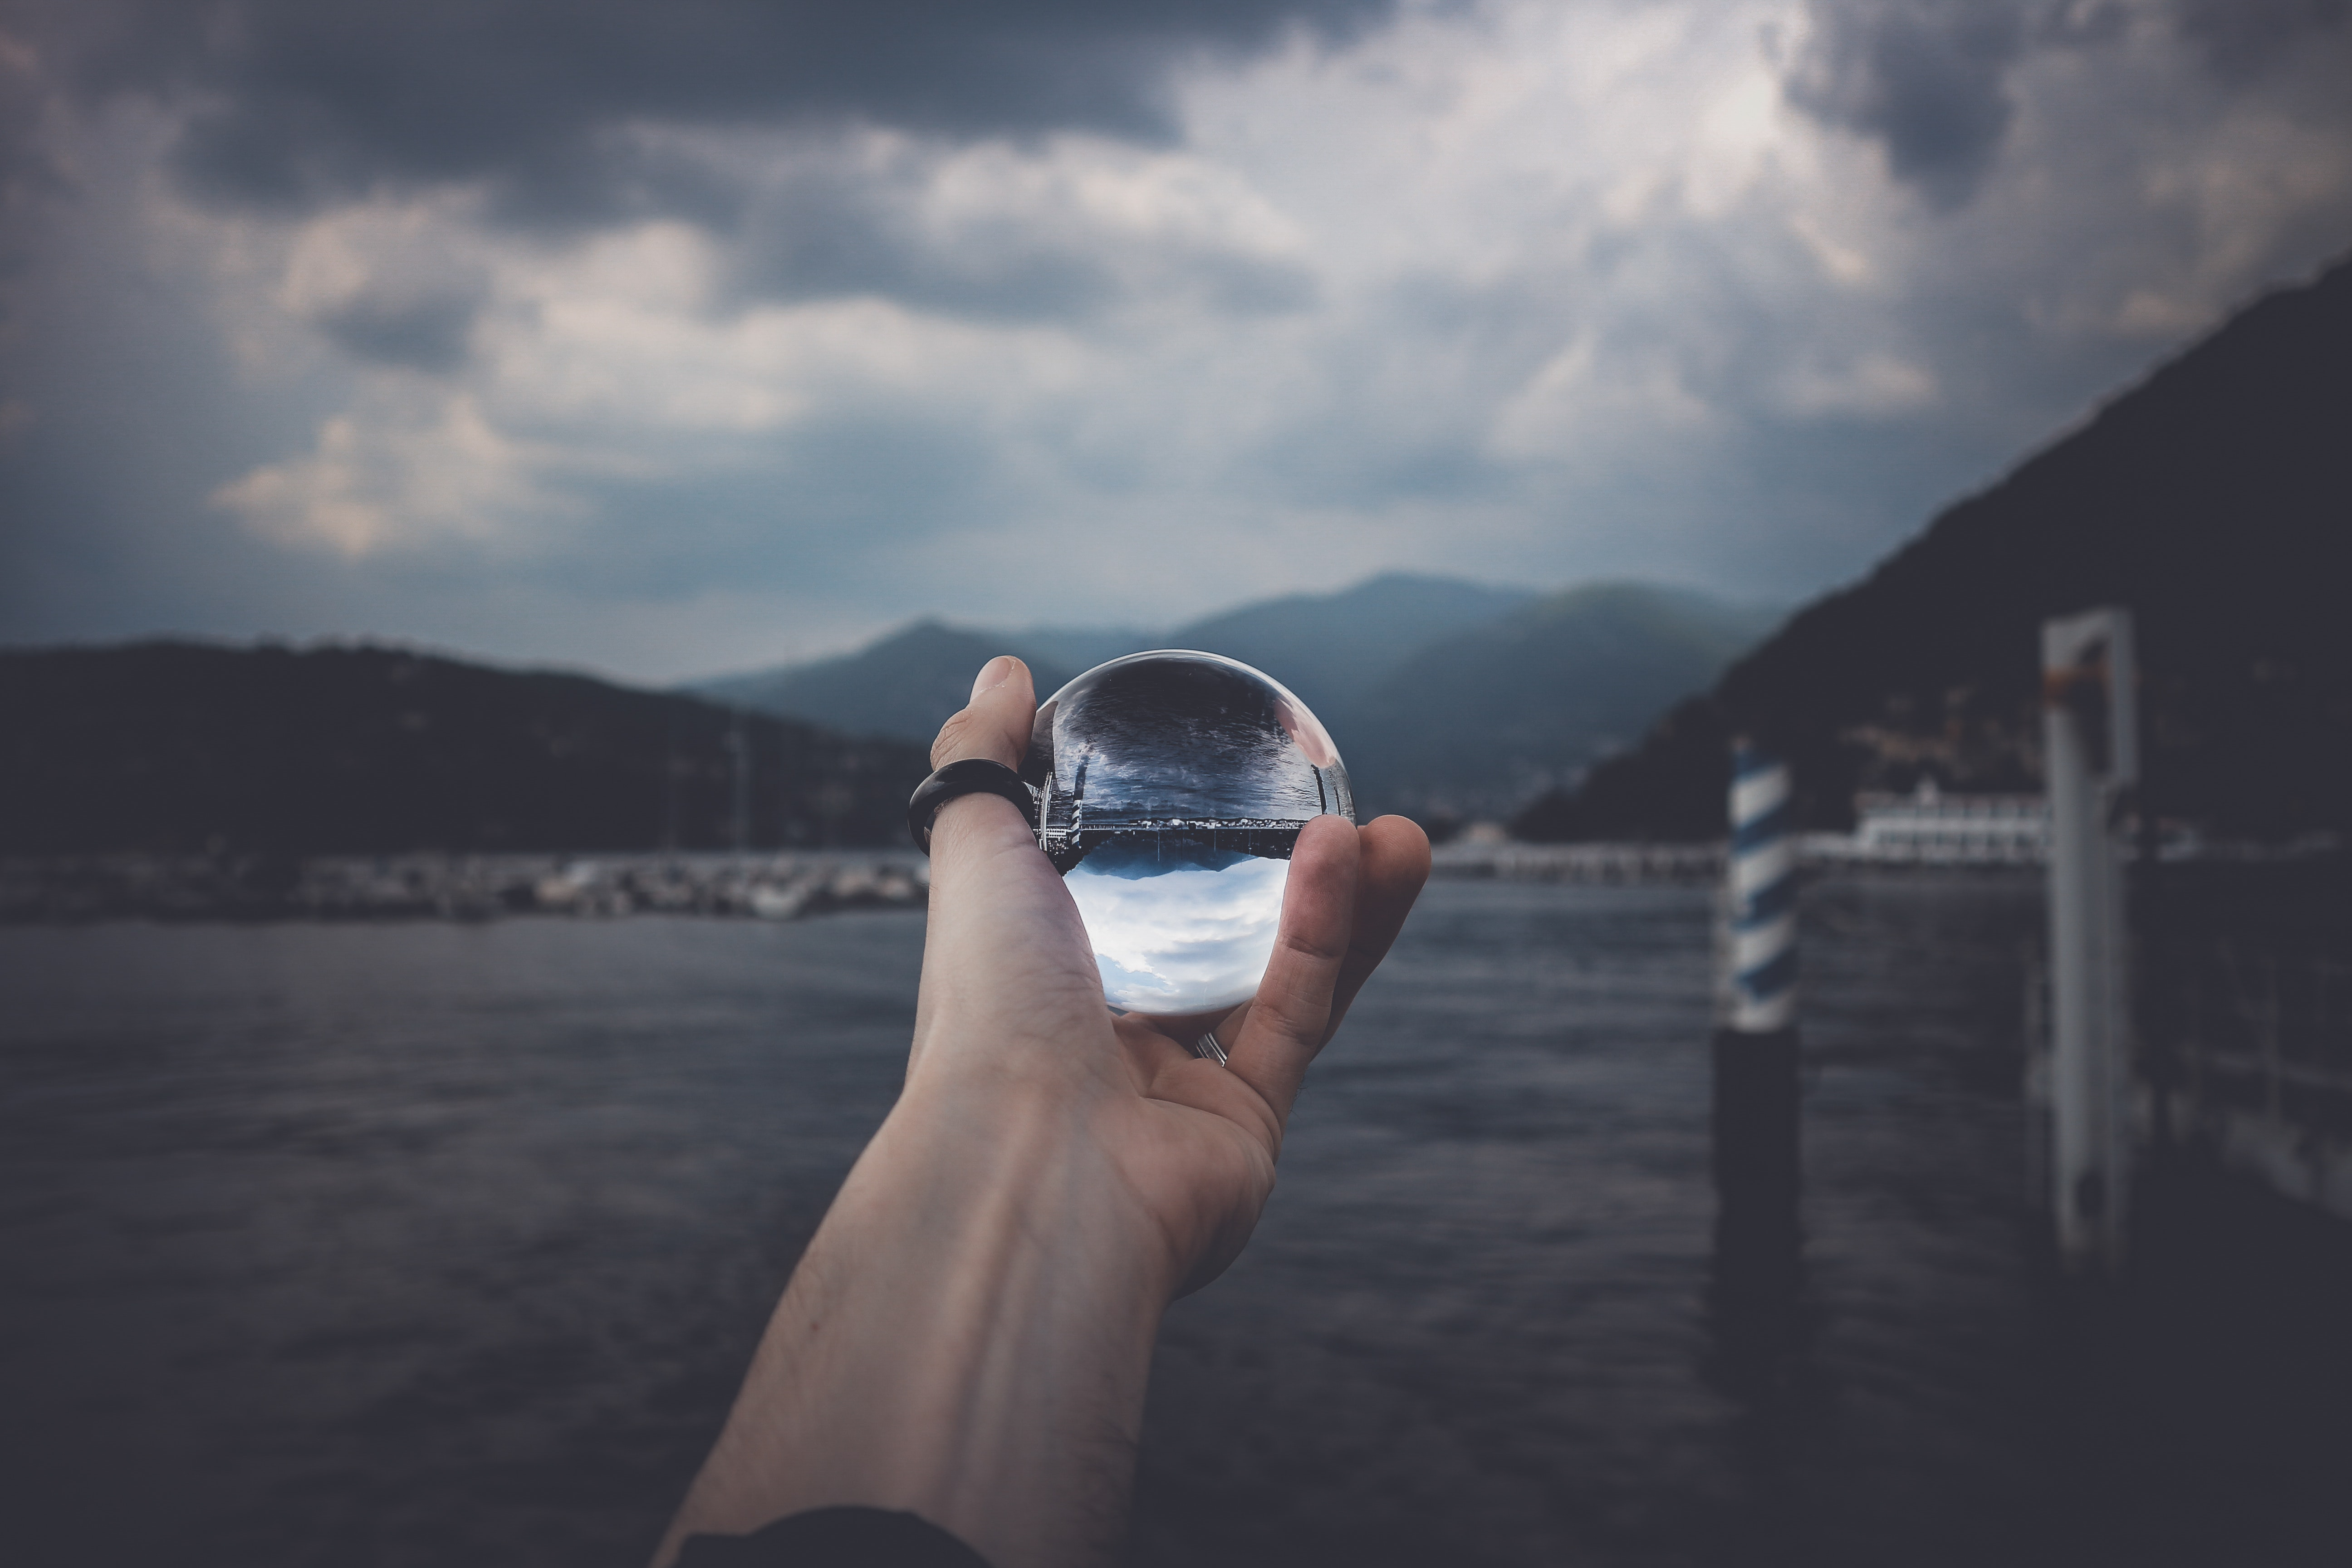 photo displays person holding ball with reflection of